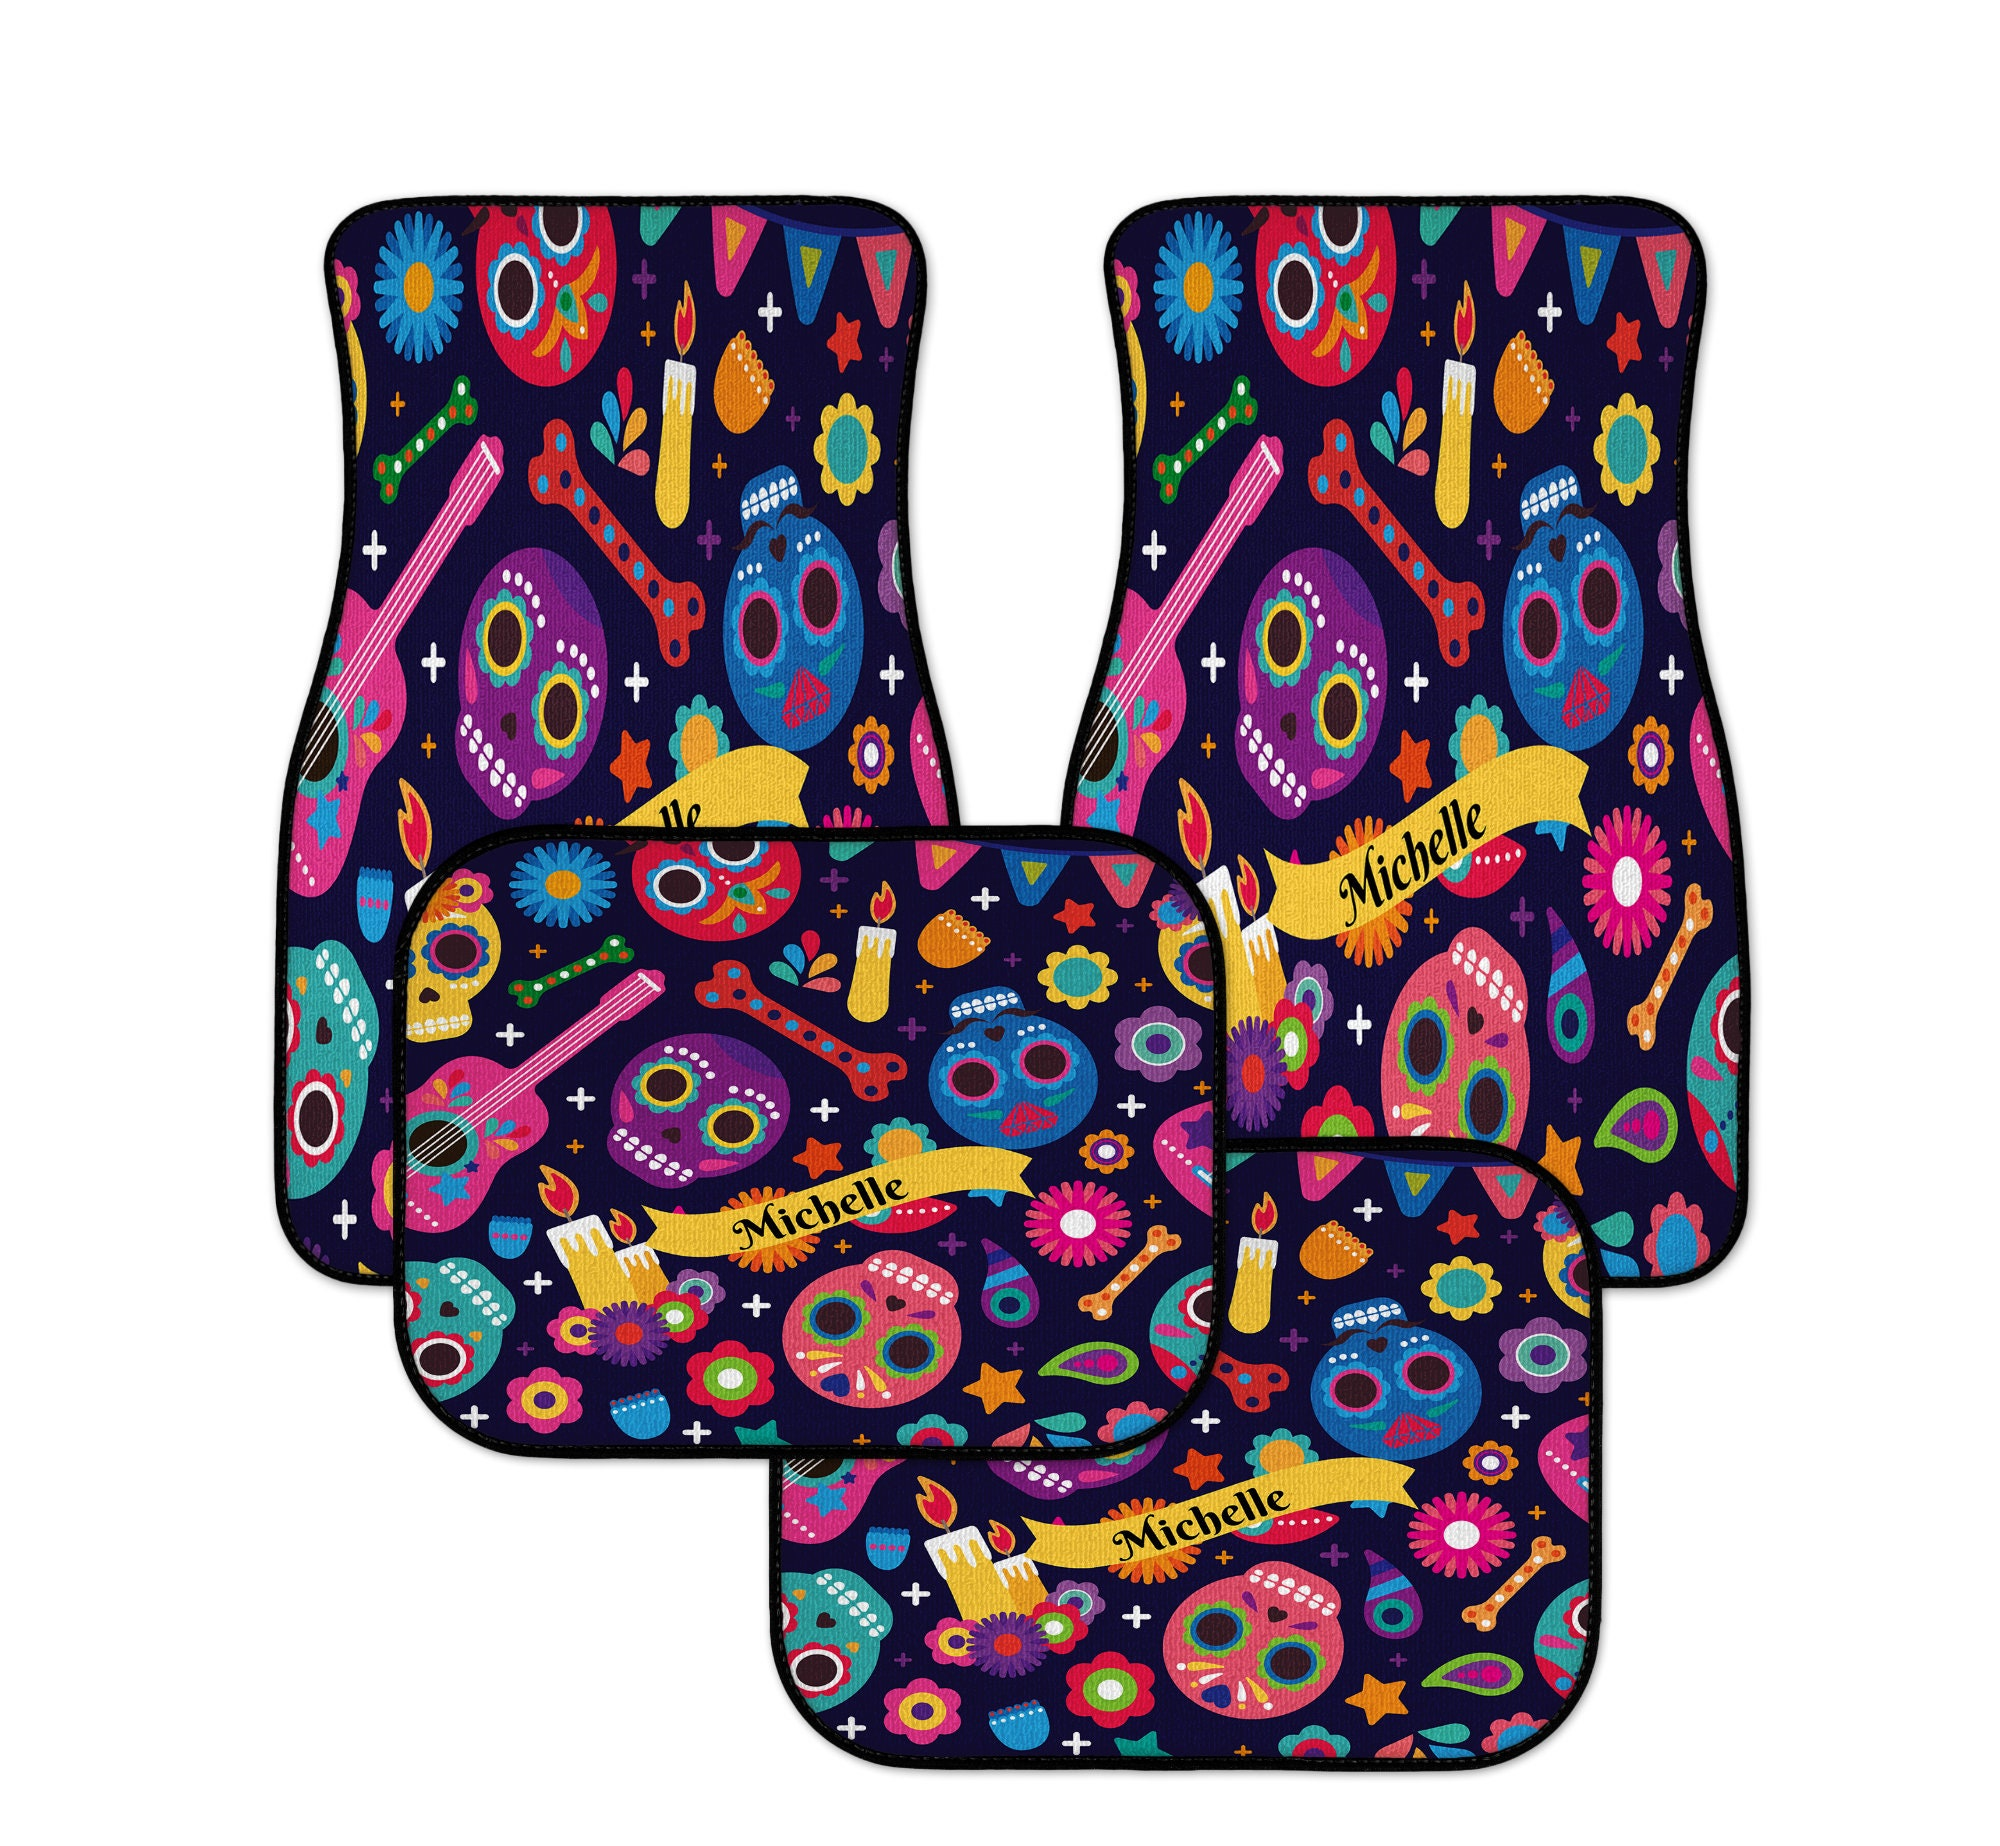 Sugar Skull Car Mats Personalized Custom With Your Name Day Of The Dead